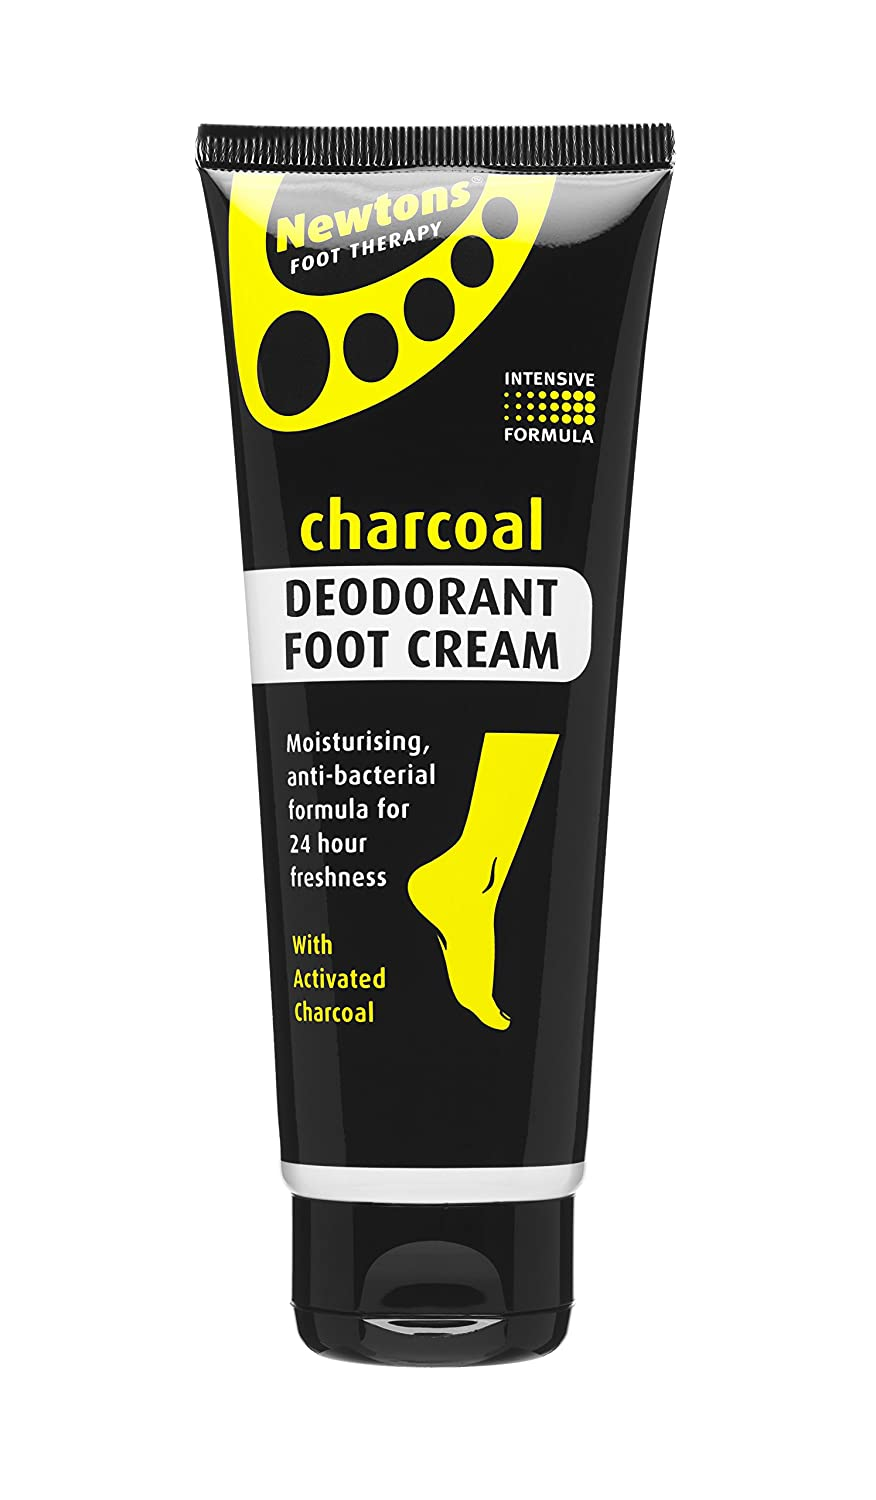 Newtons Foot Therapy Charcoal Deodorant Foot Cream, 100 ml 07021NEW